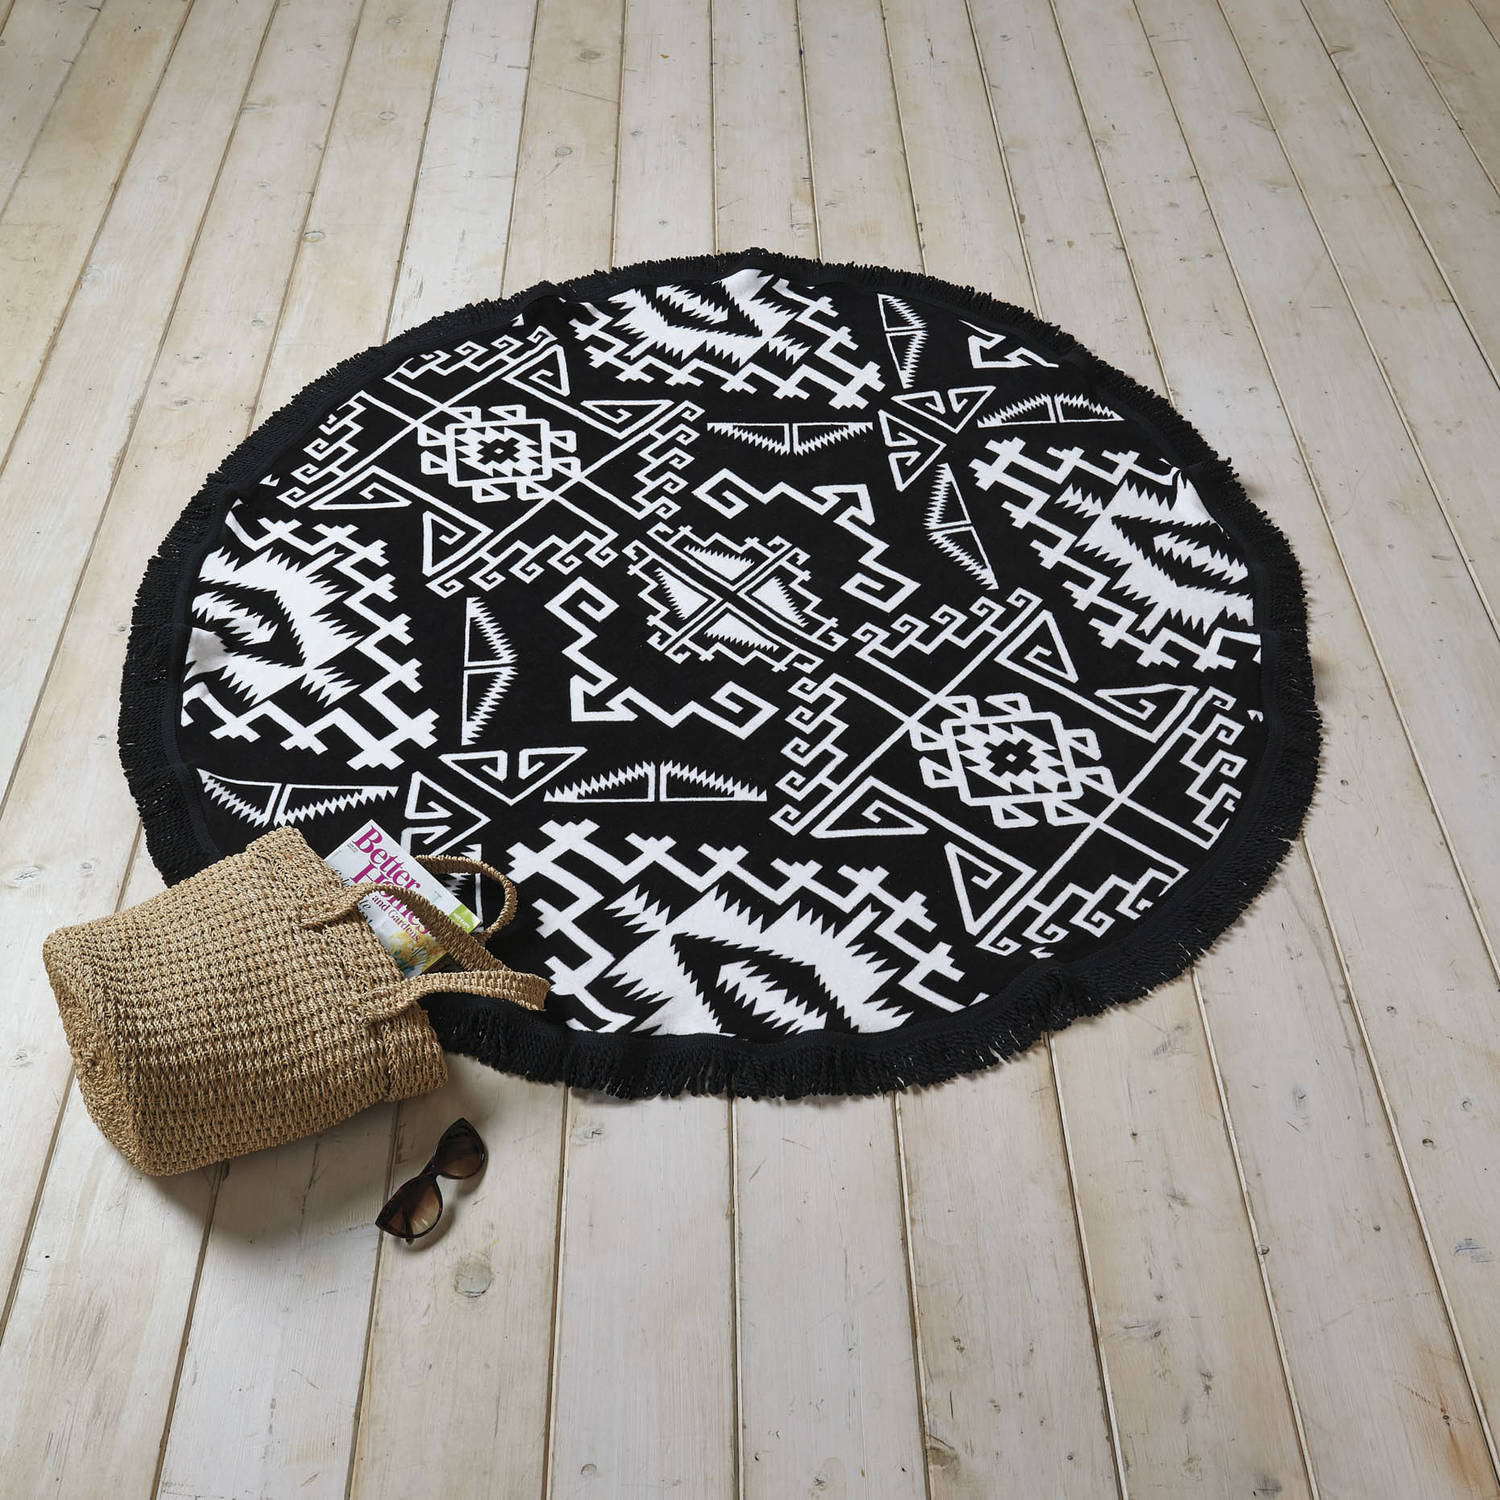 Better Homes And Gardens Black And White Printed Round Beach Towel